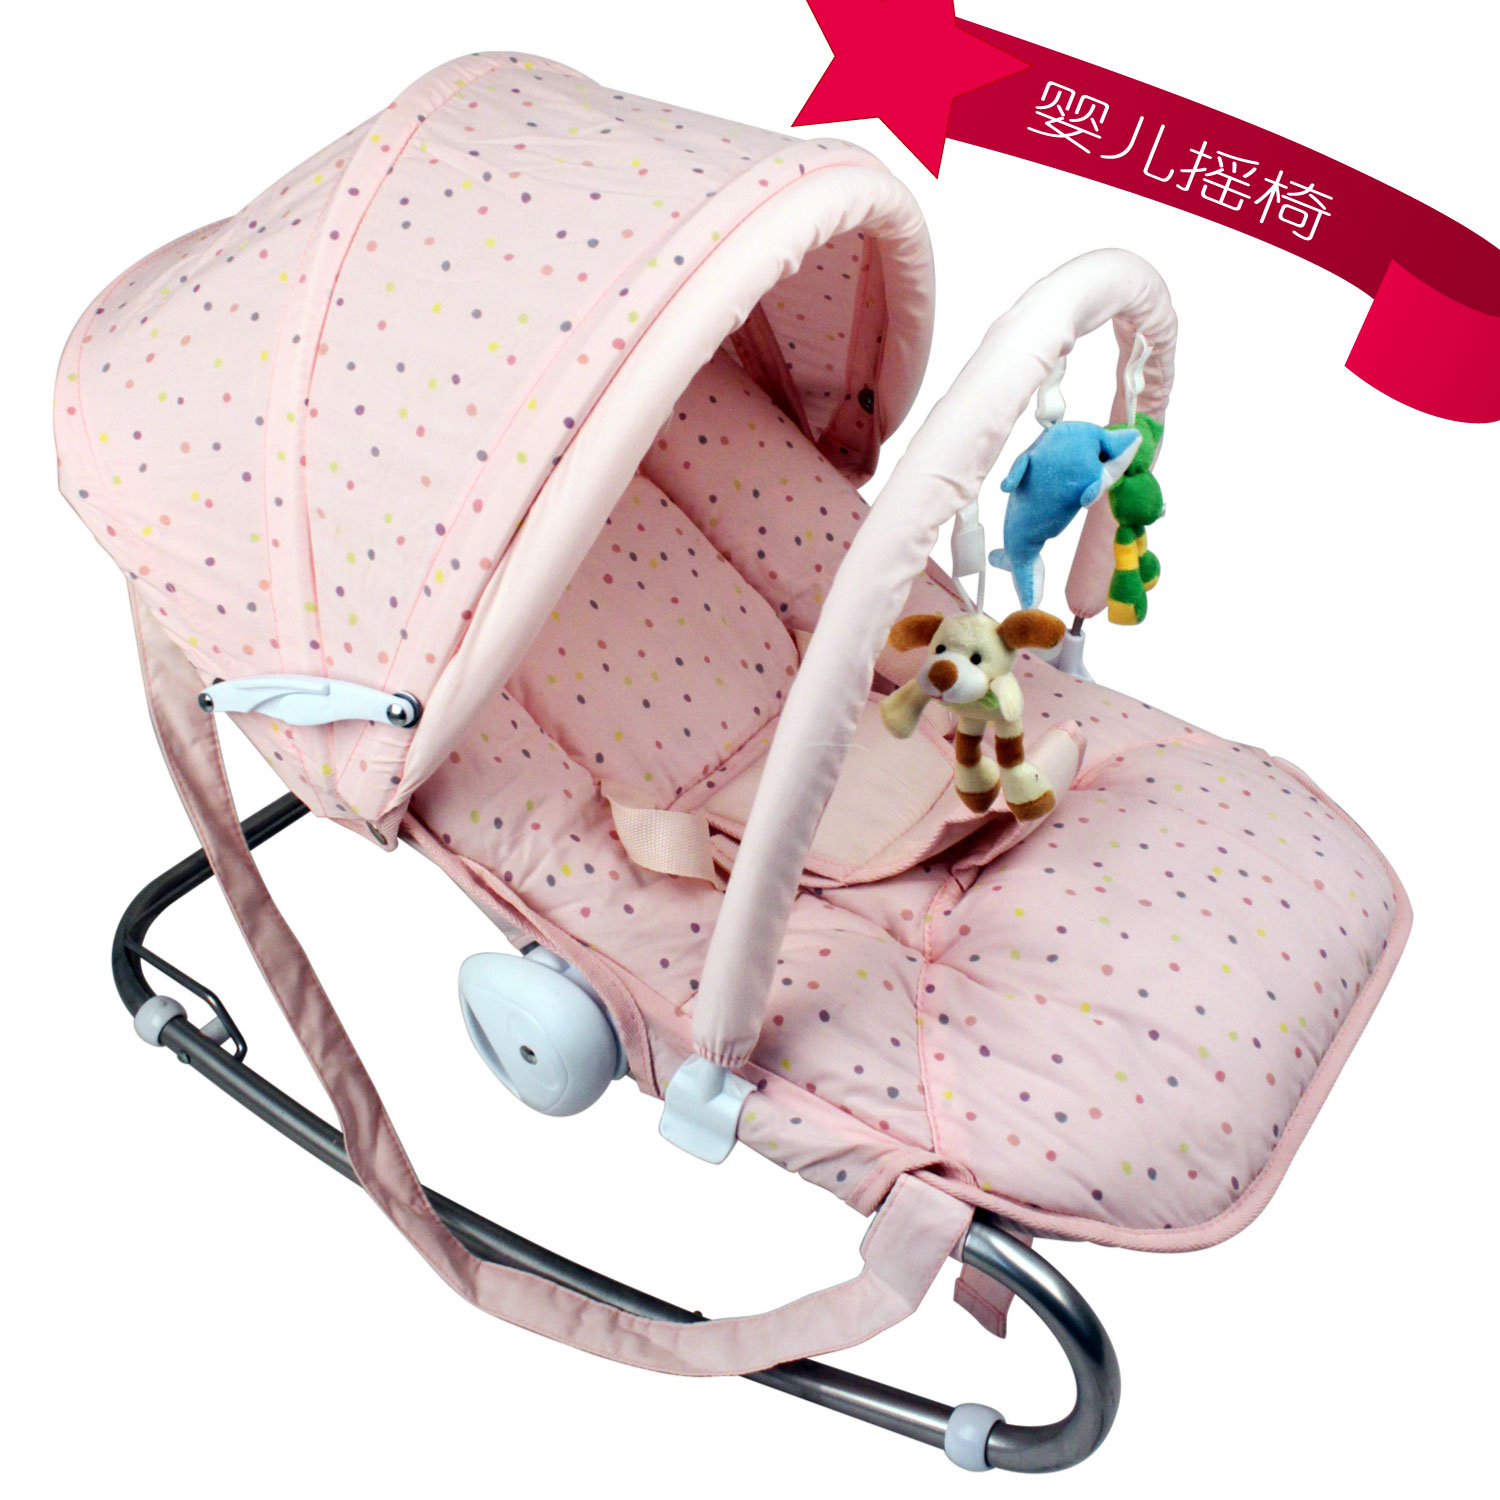 Baby rocking chairs - 2017 Direct Selling Top Fashion 18kg Metal Print Multifunctional Baby Rocking Chair Cradle Reassure The Chaise